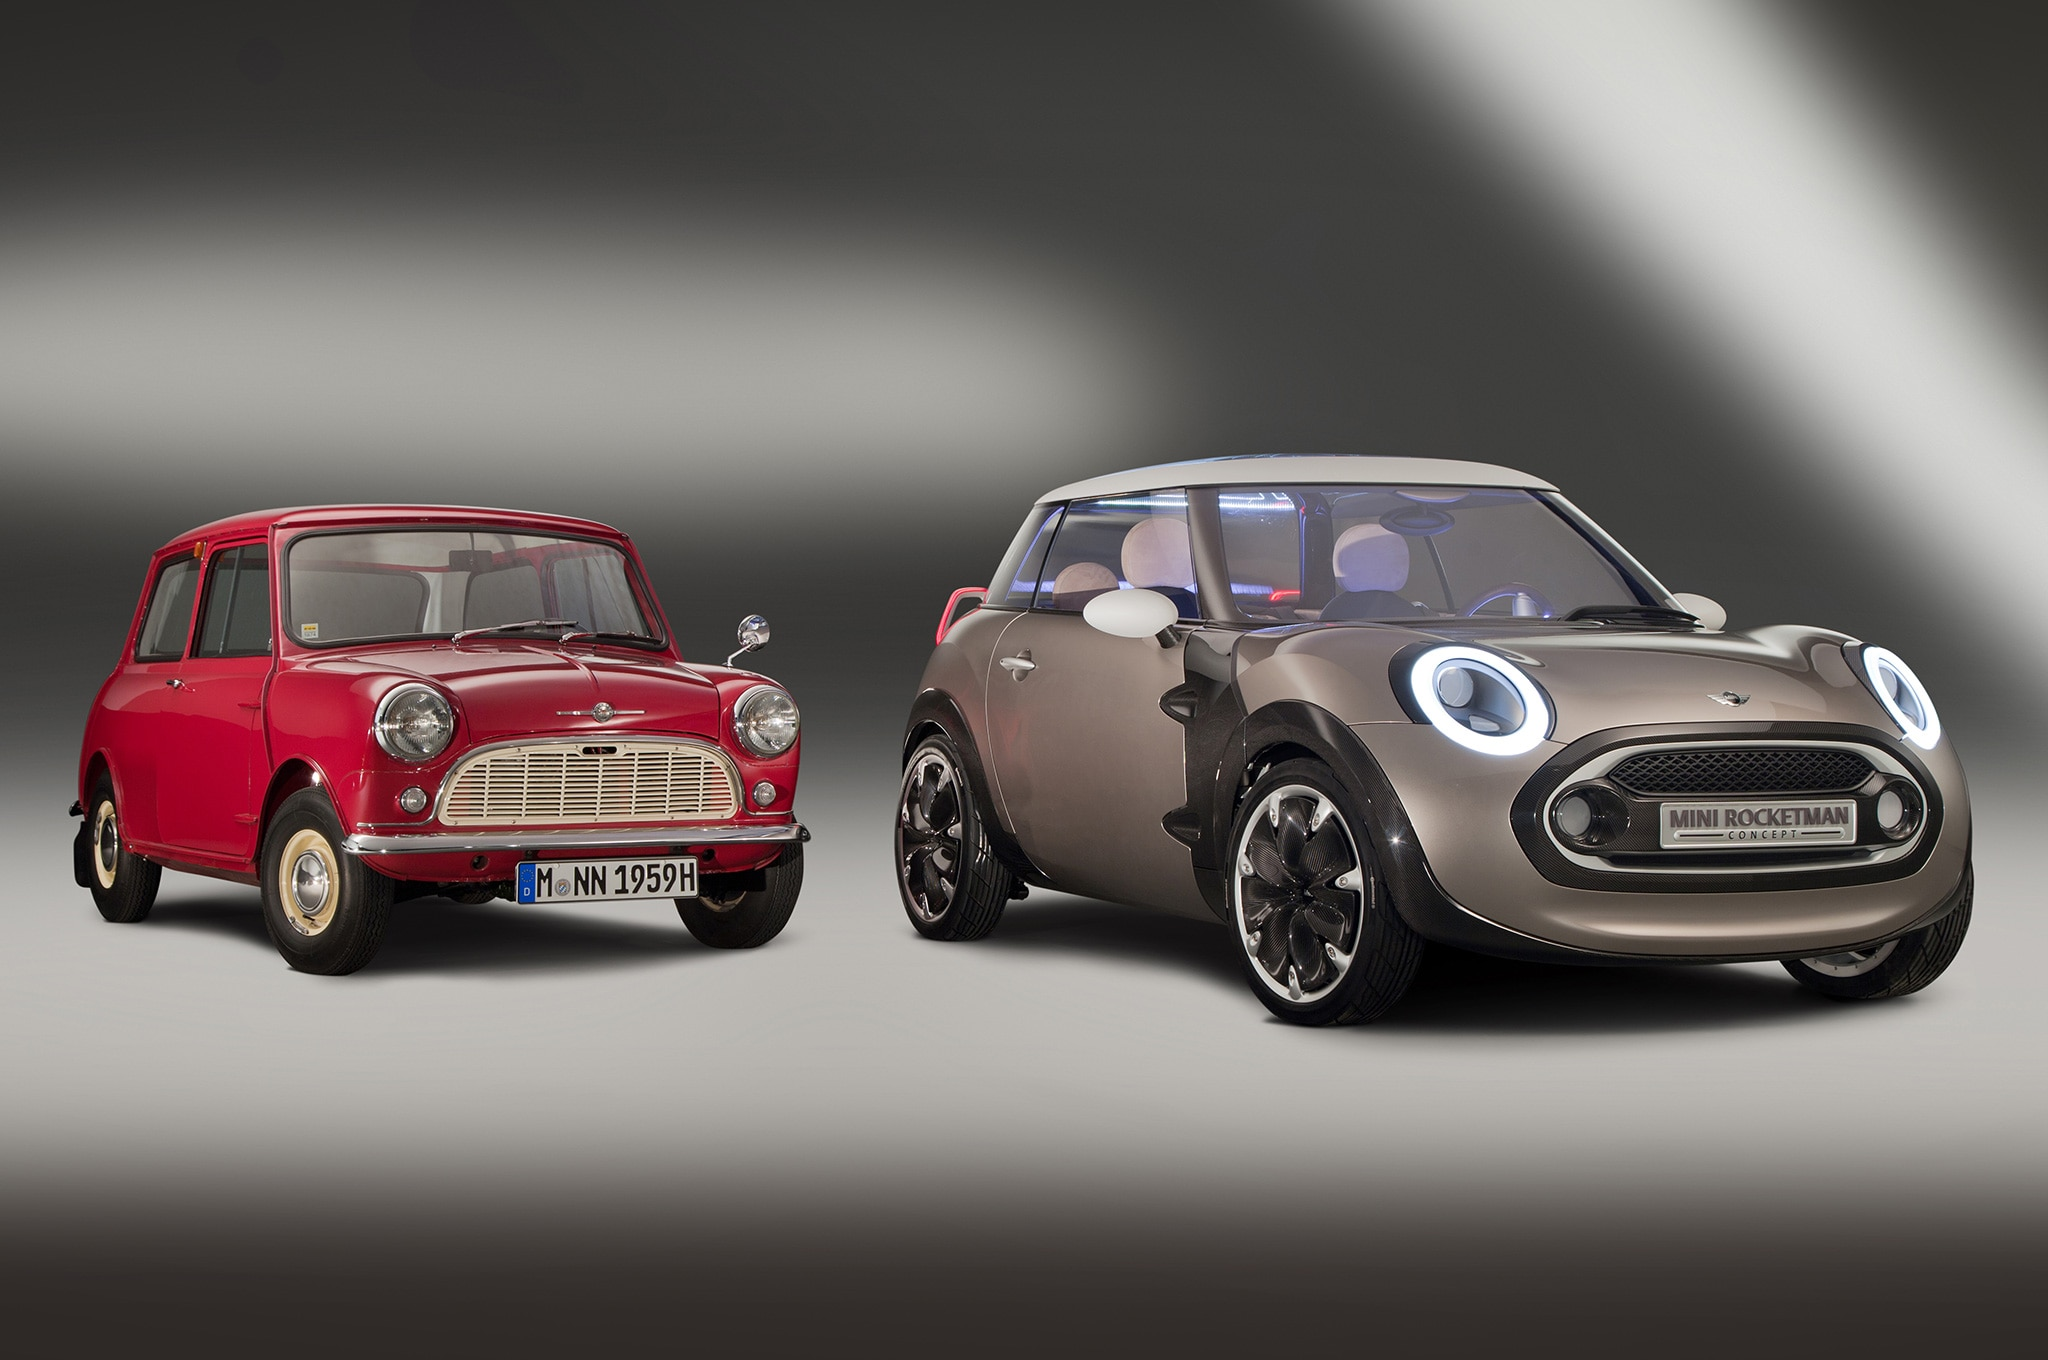 Mini Rocketman Concept With Original